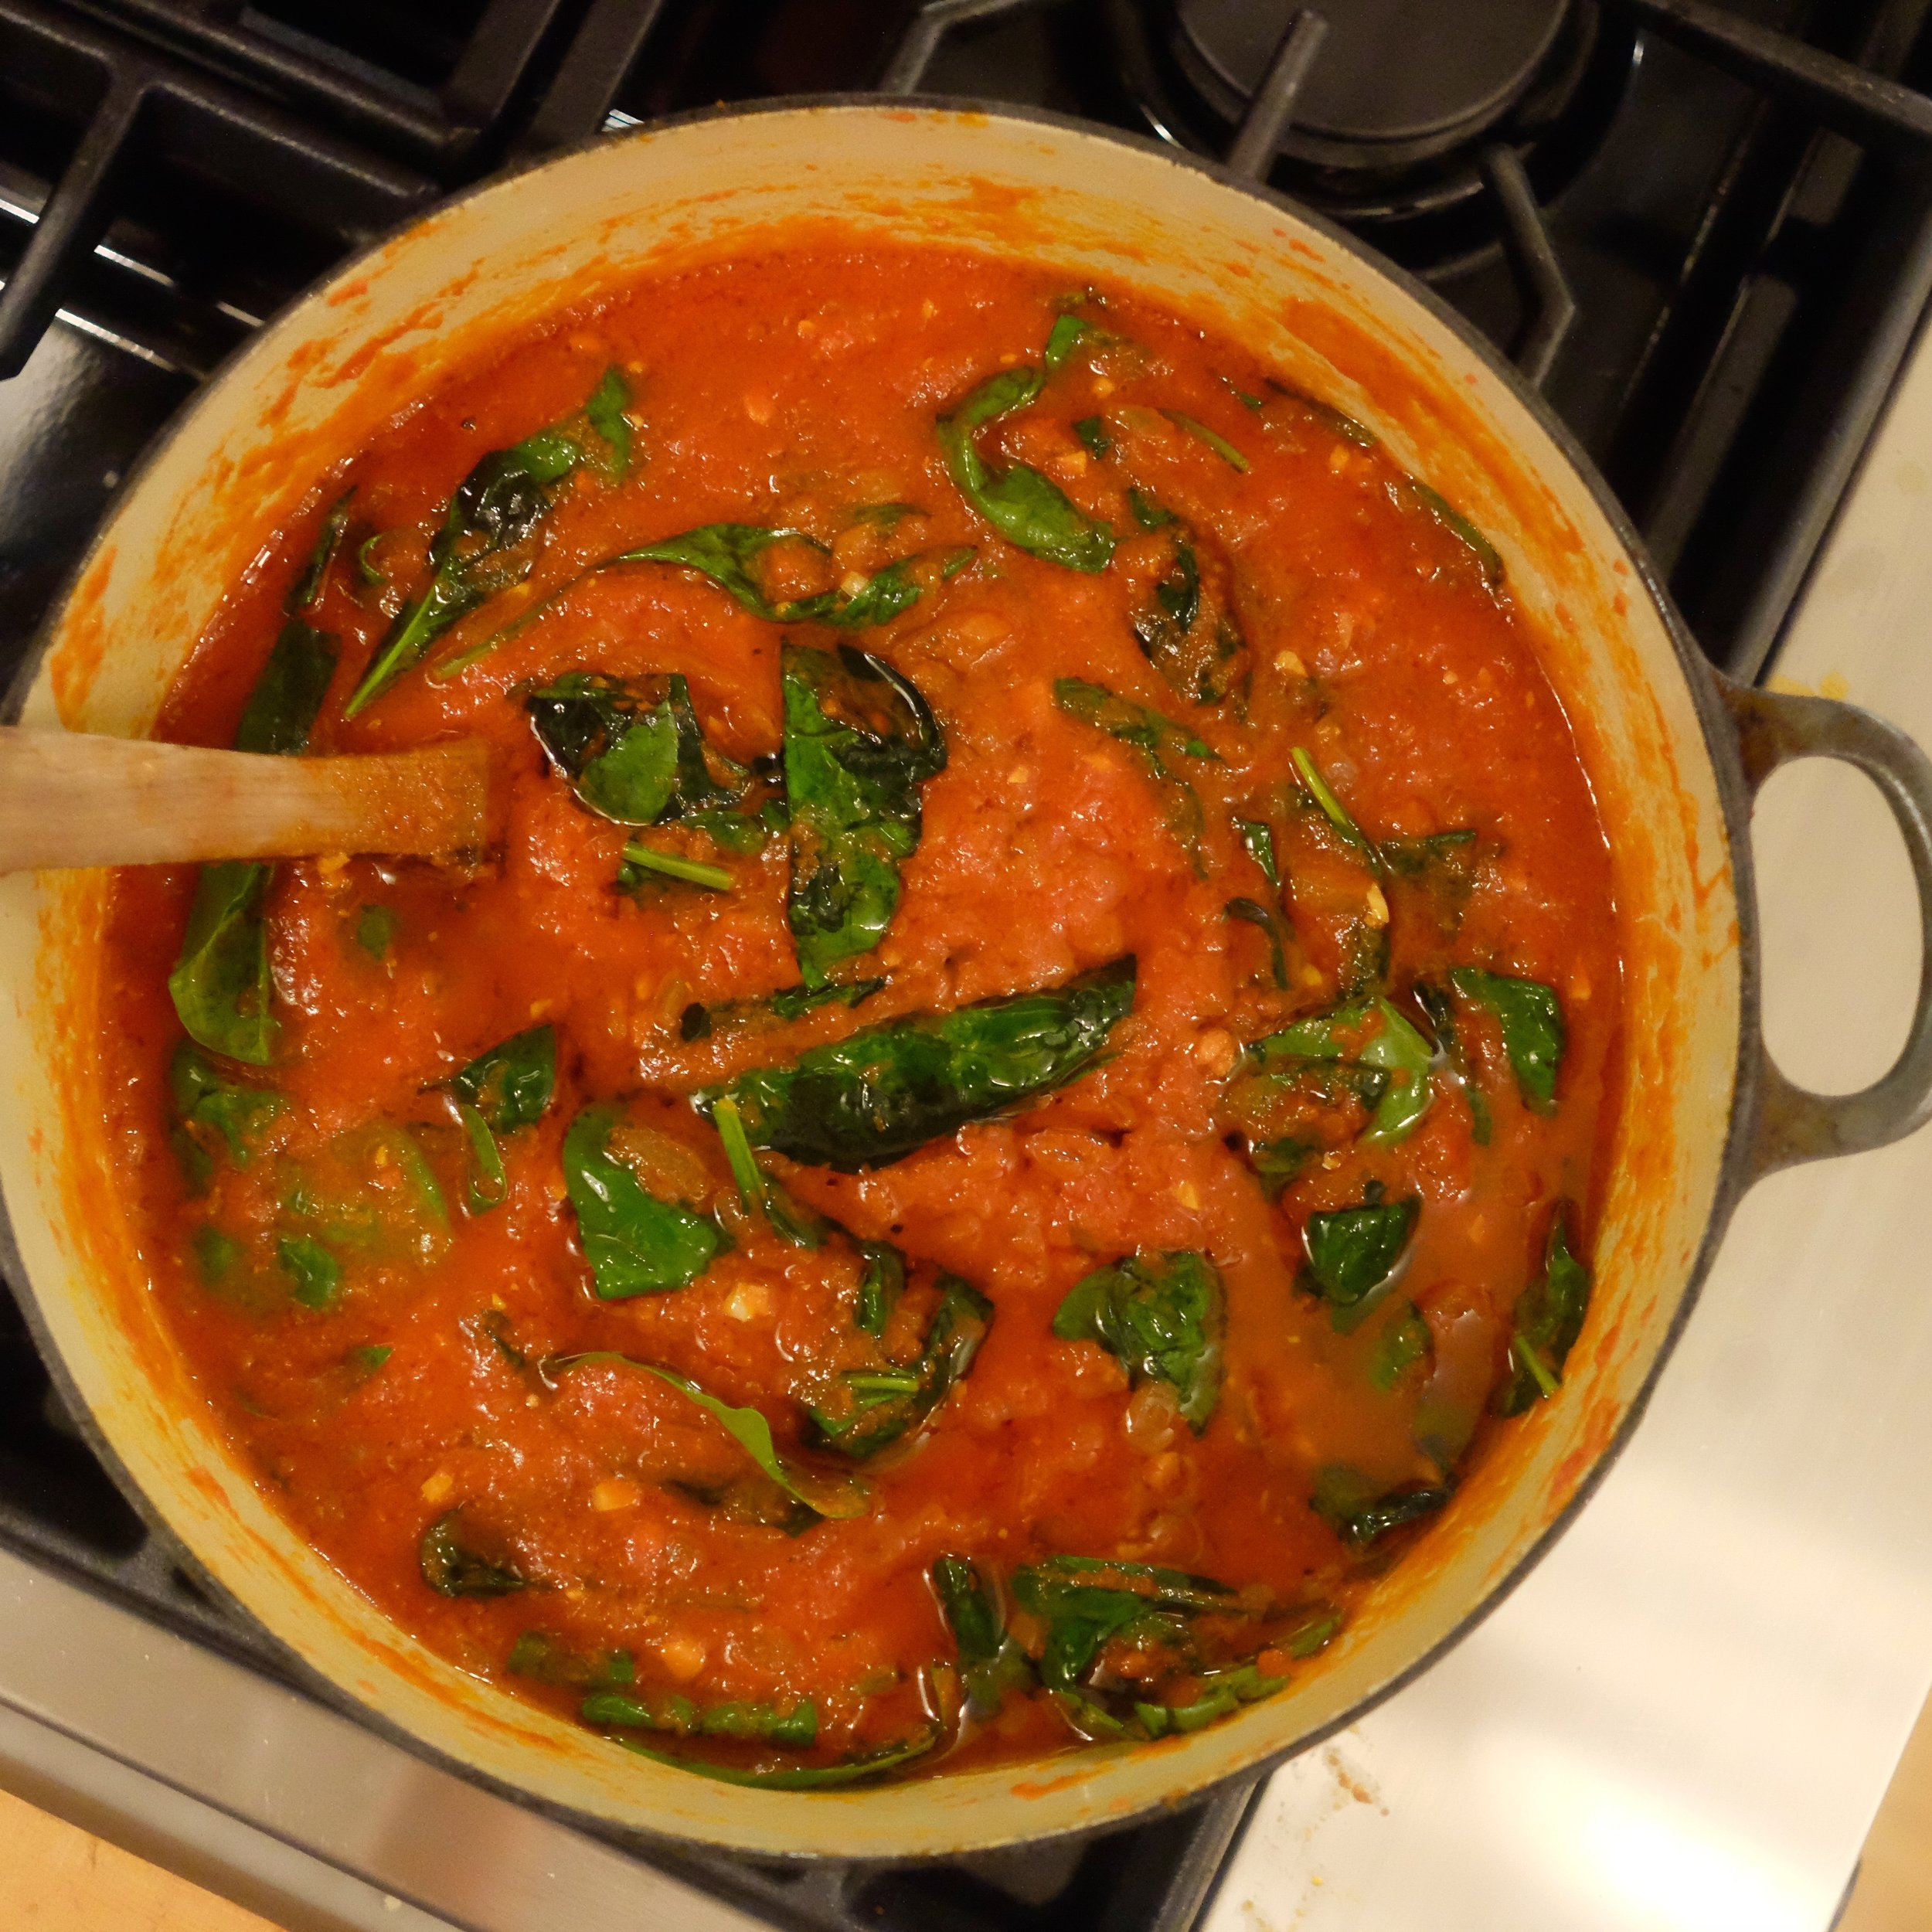 slow cooked tomato sauce